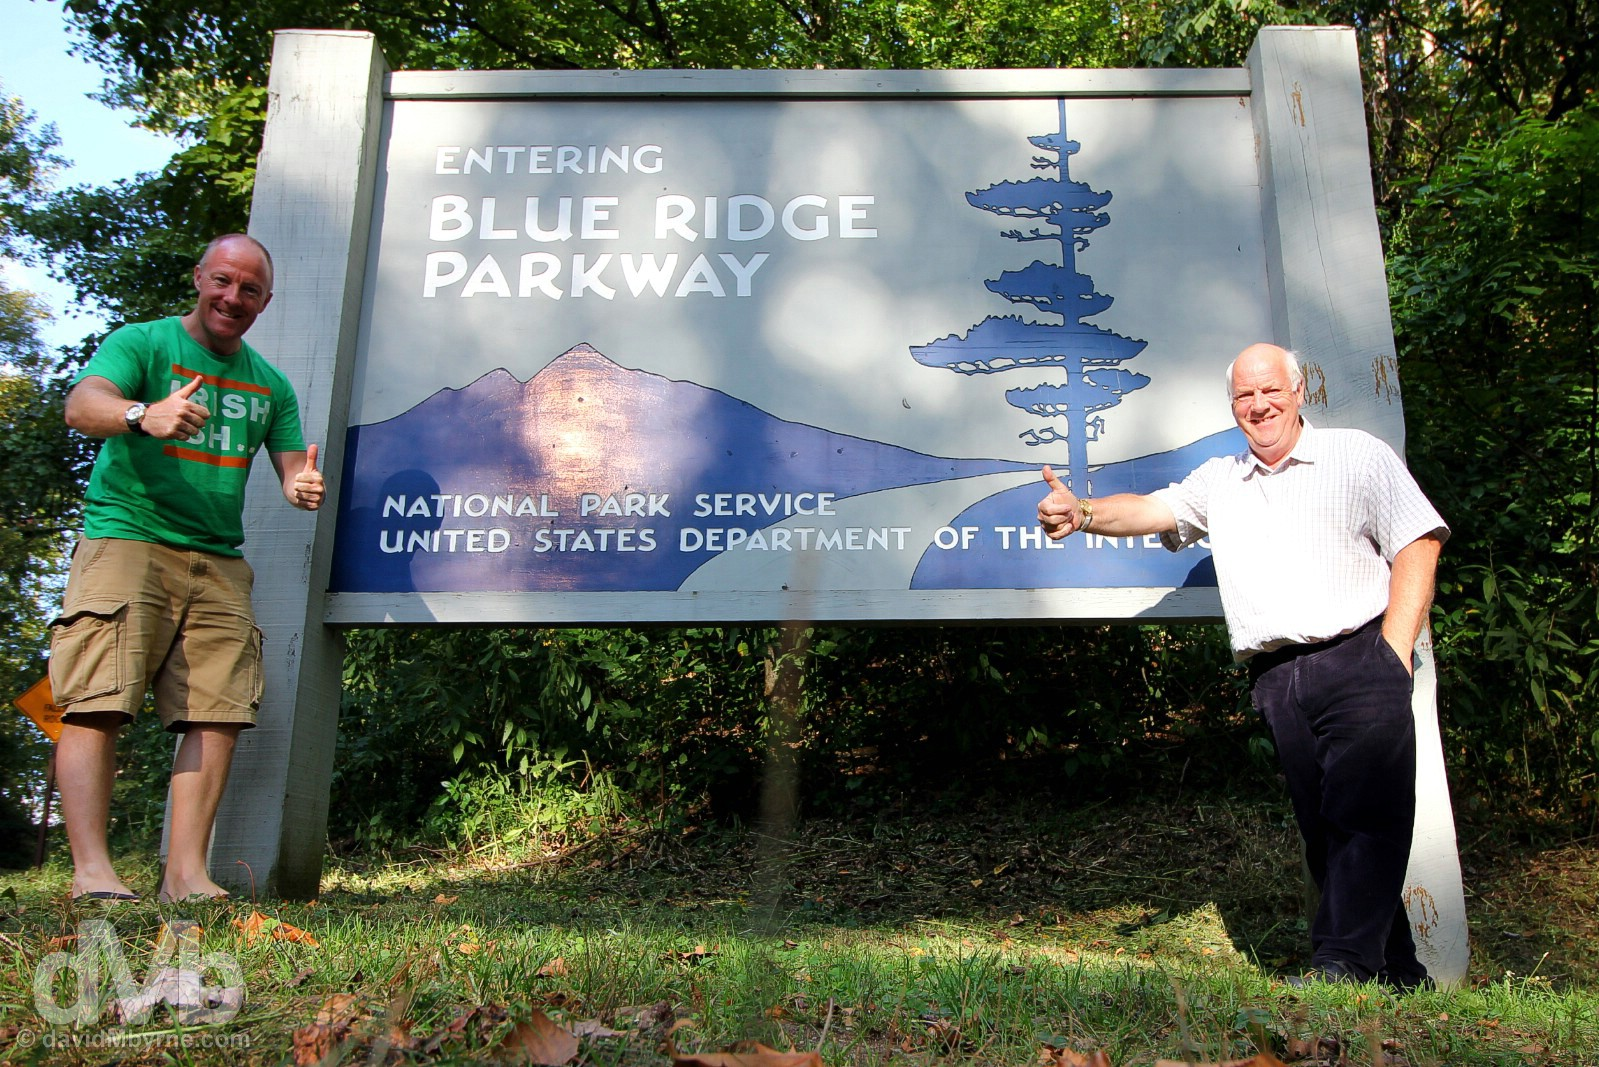 At the southern entry to the All-American Blue Ridge Parkway, milepost 469, off US 441 outside Cherokee, North Carolina, USA. September 22, 2016.